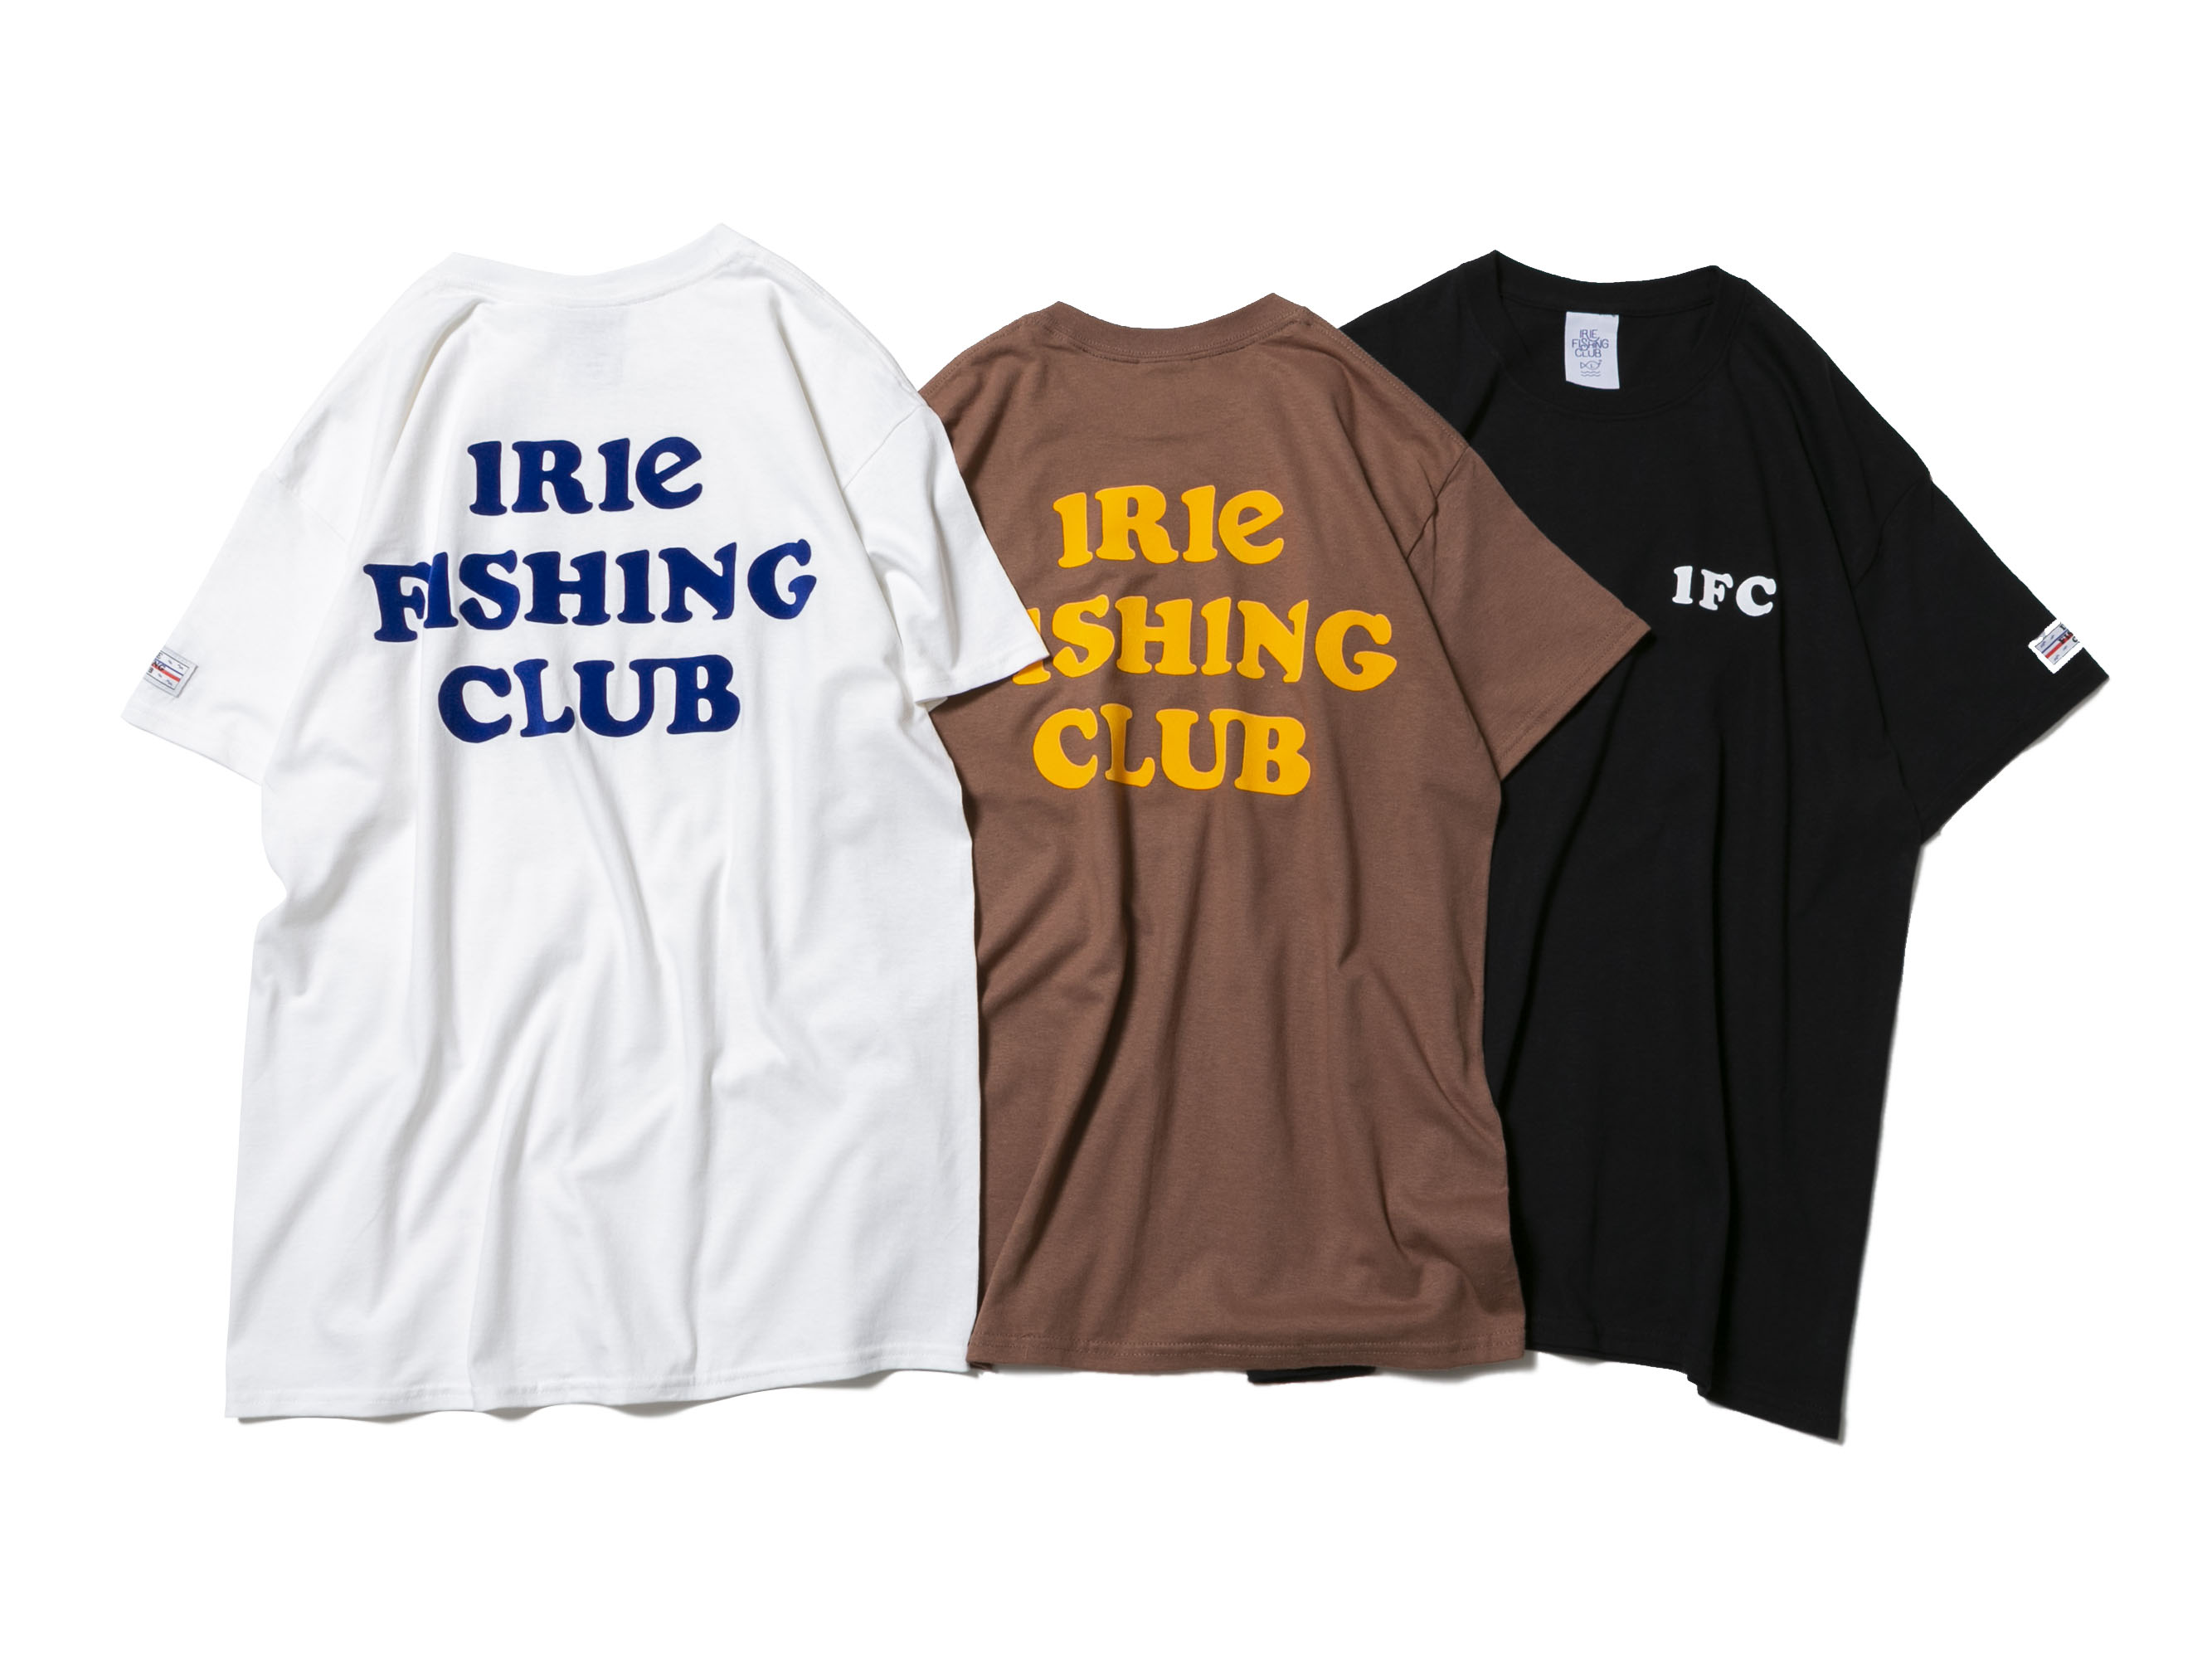 IRIE FISHING CLUB TEE - IRIE FISHING CLUB-